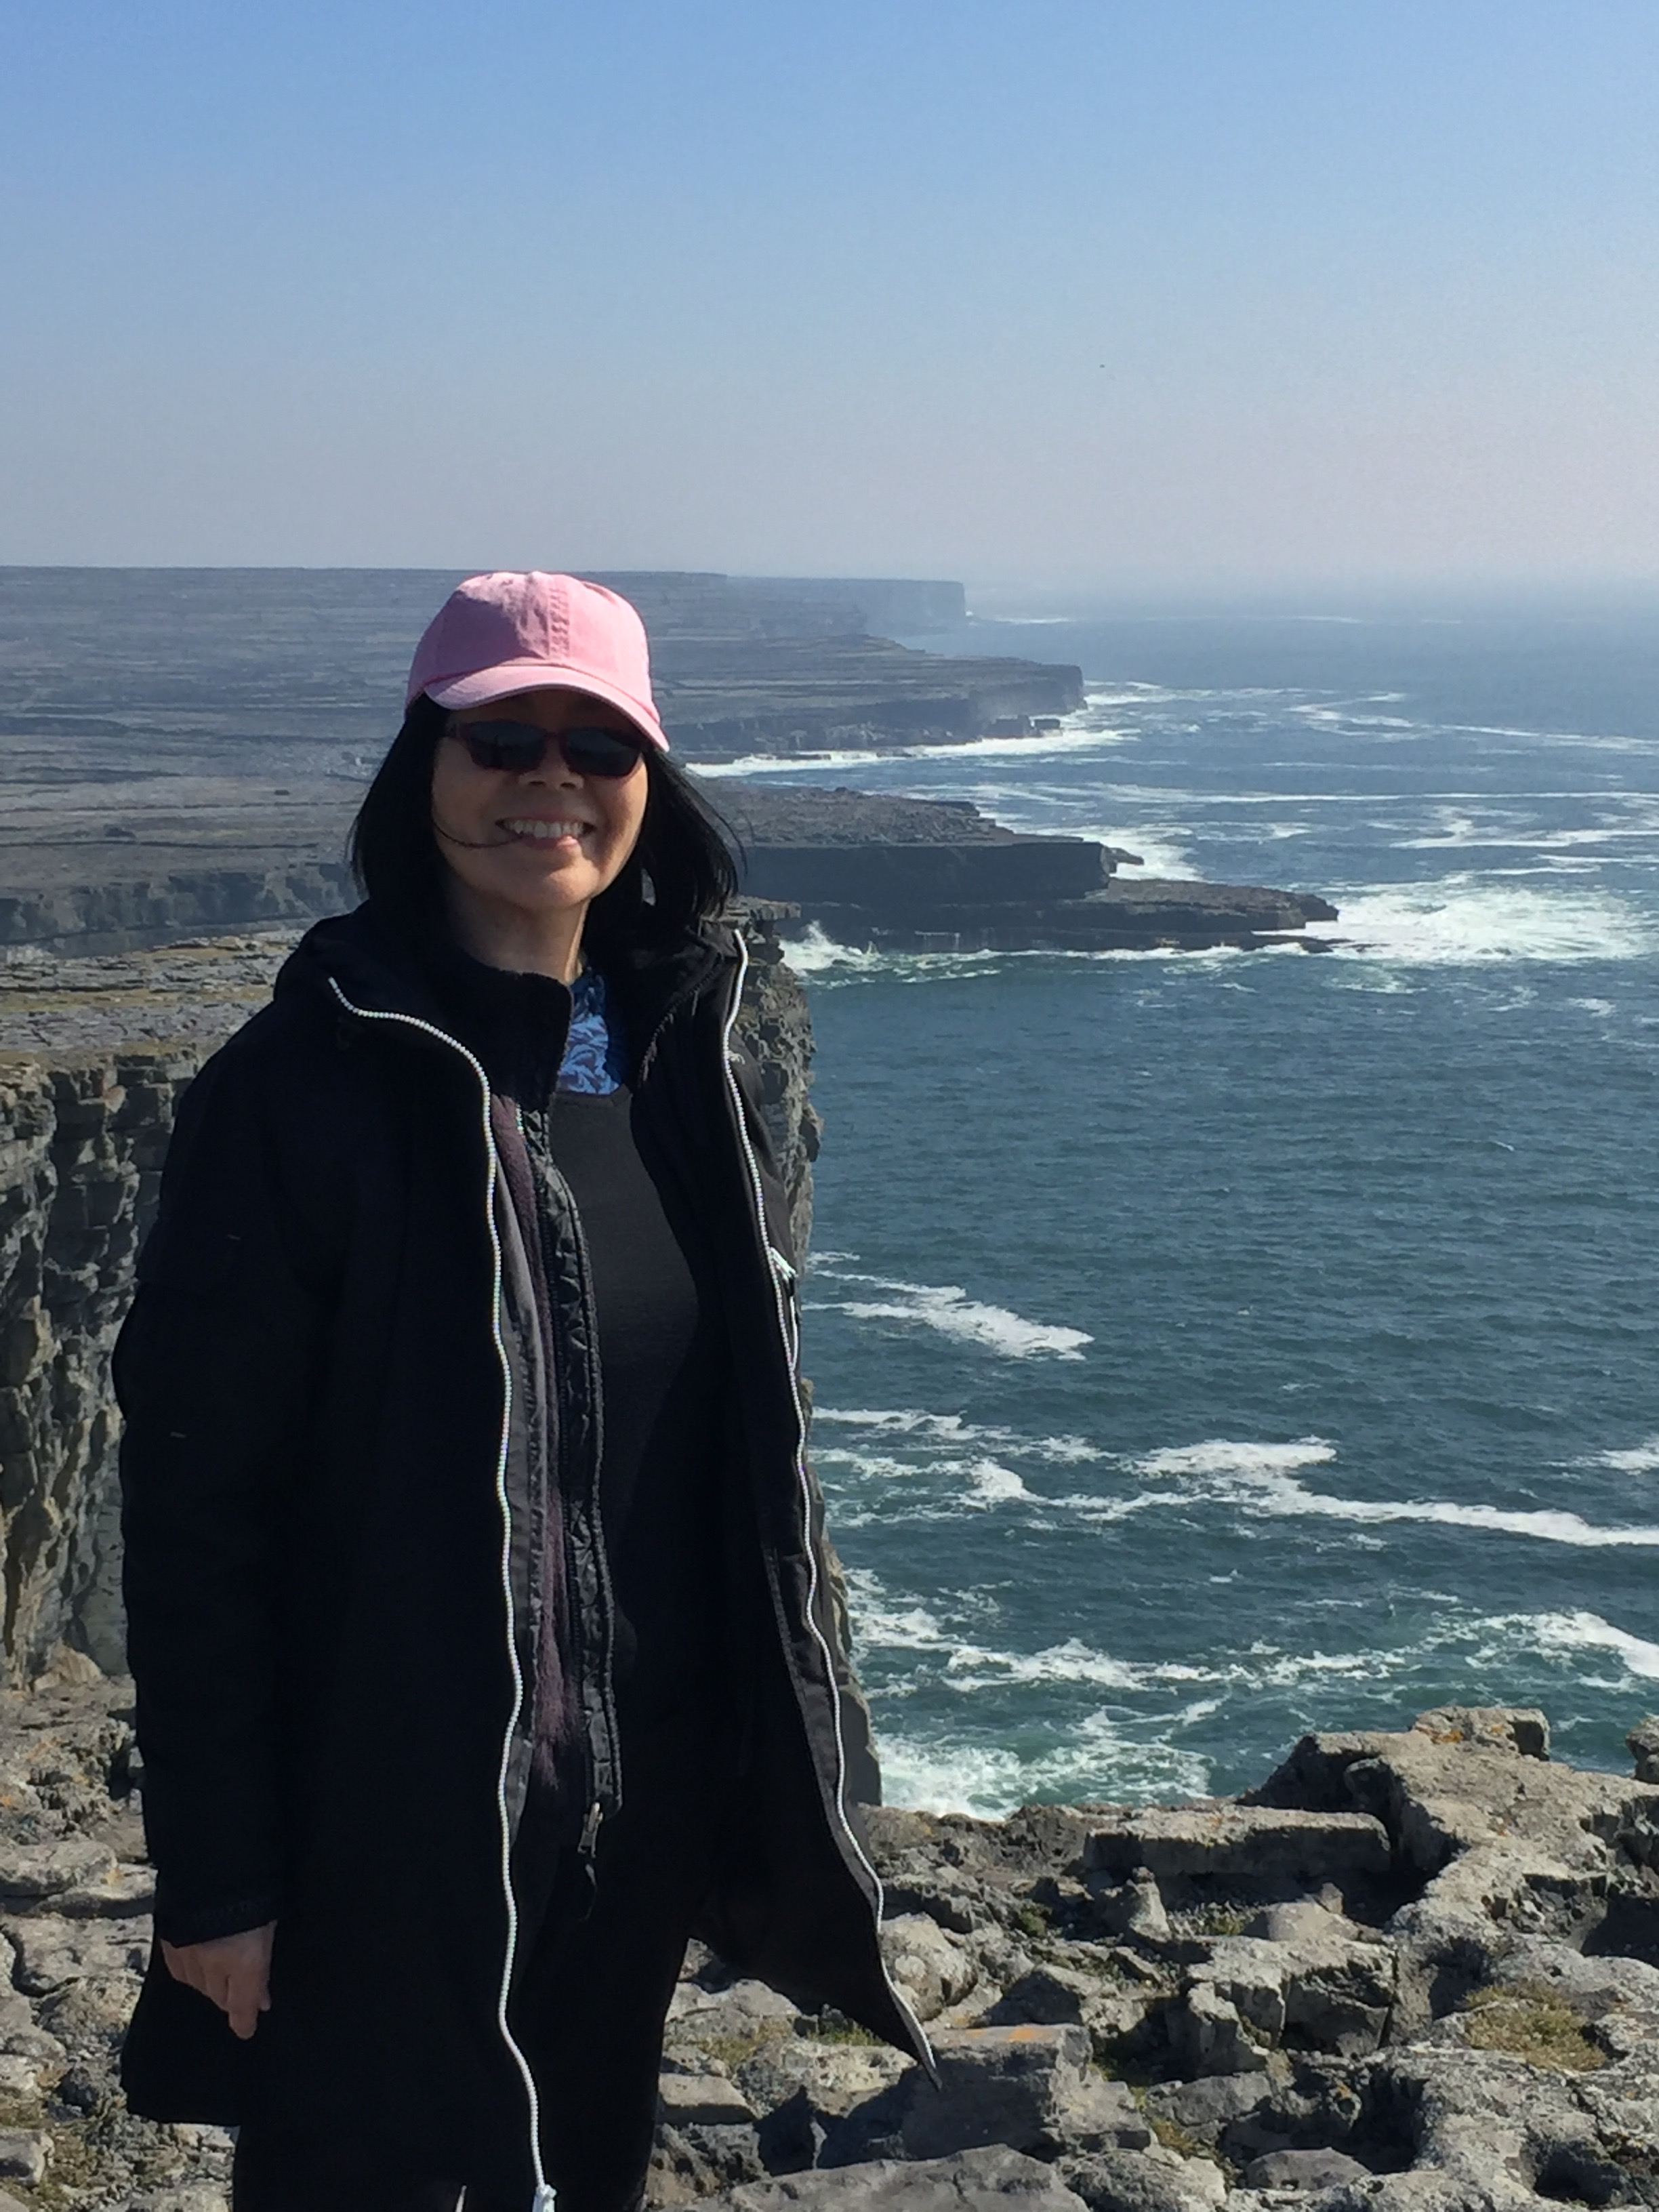 Two final shots of Dun Aengus -- a truly awesome site!